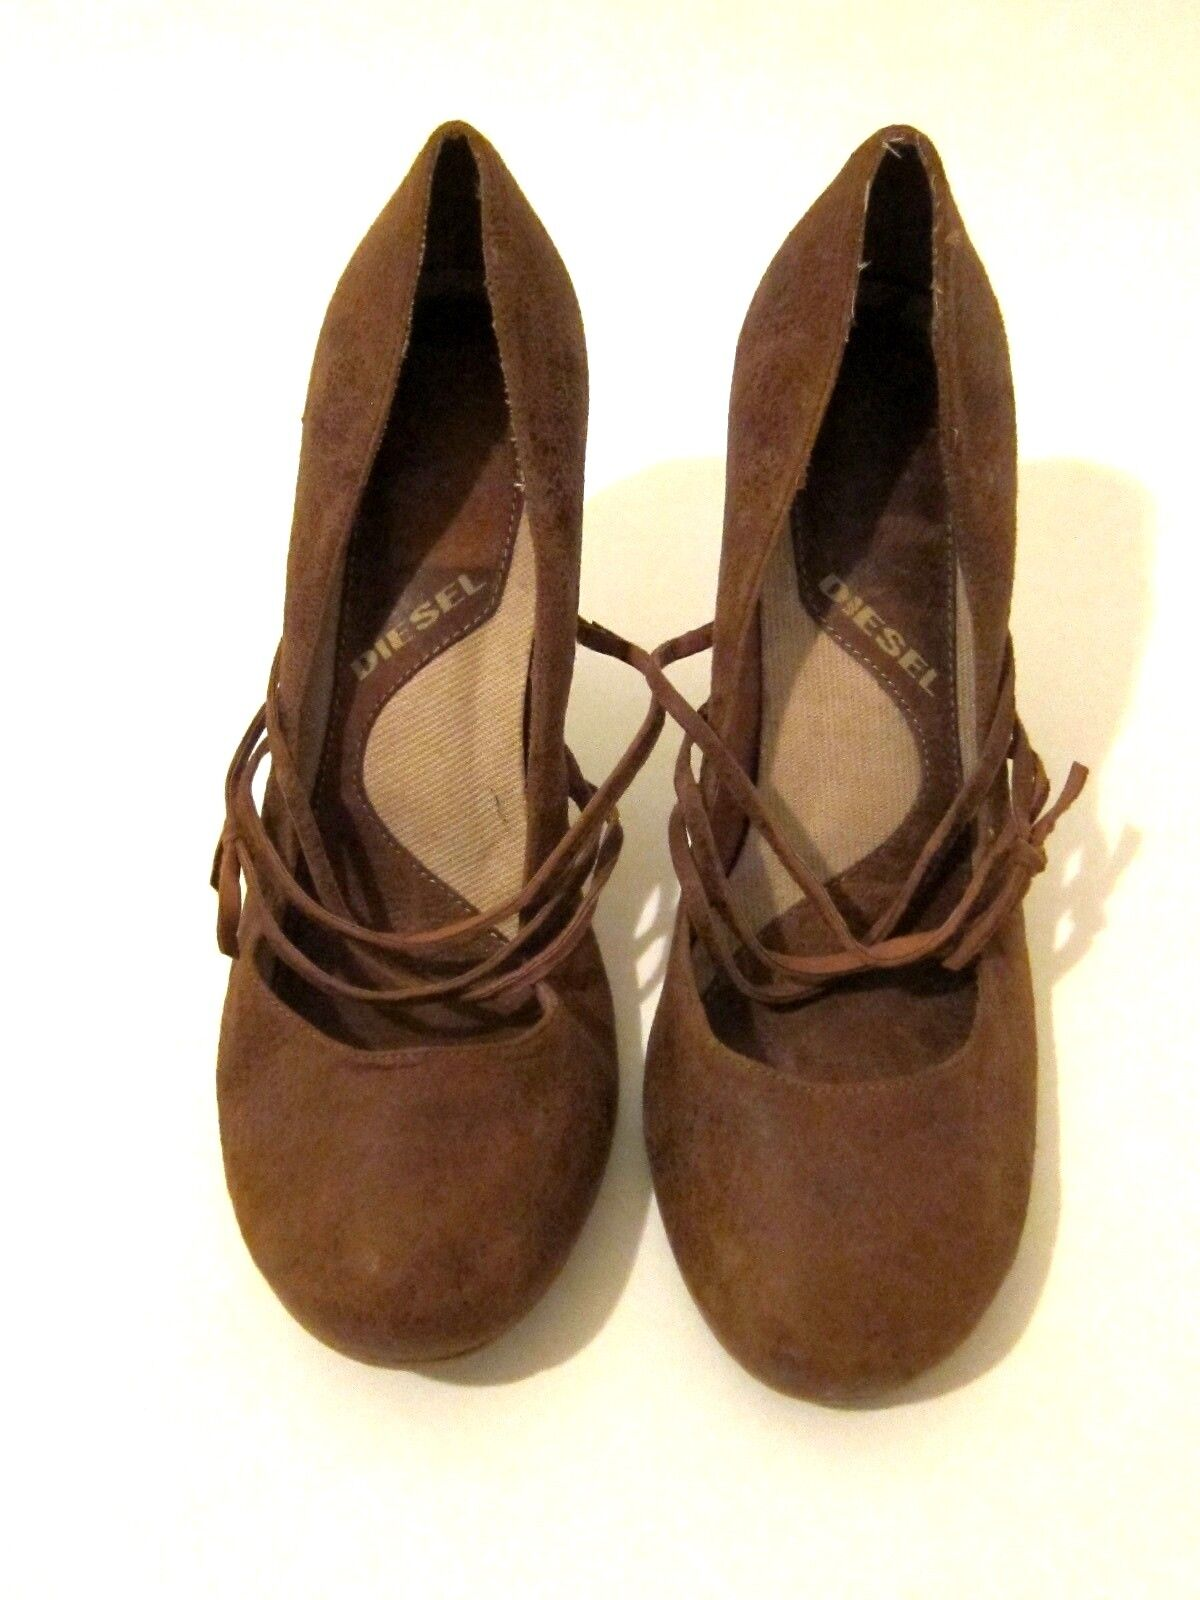 NEW Diesel Brown Leather High Heels Pumps Strappy Round Toe Sz US 11